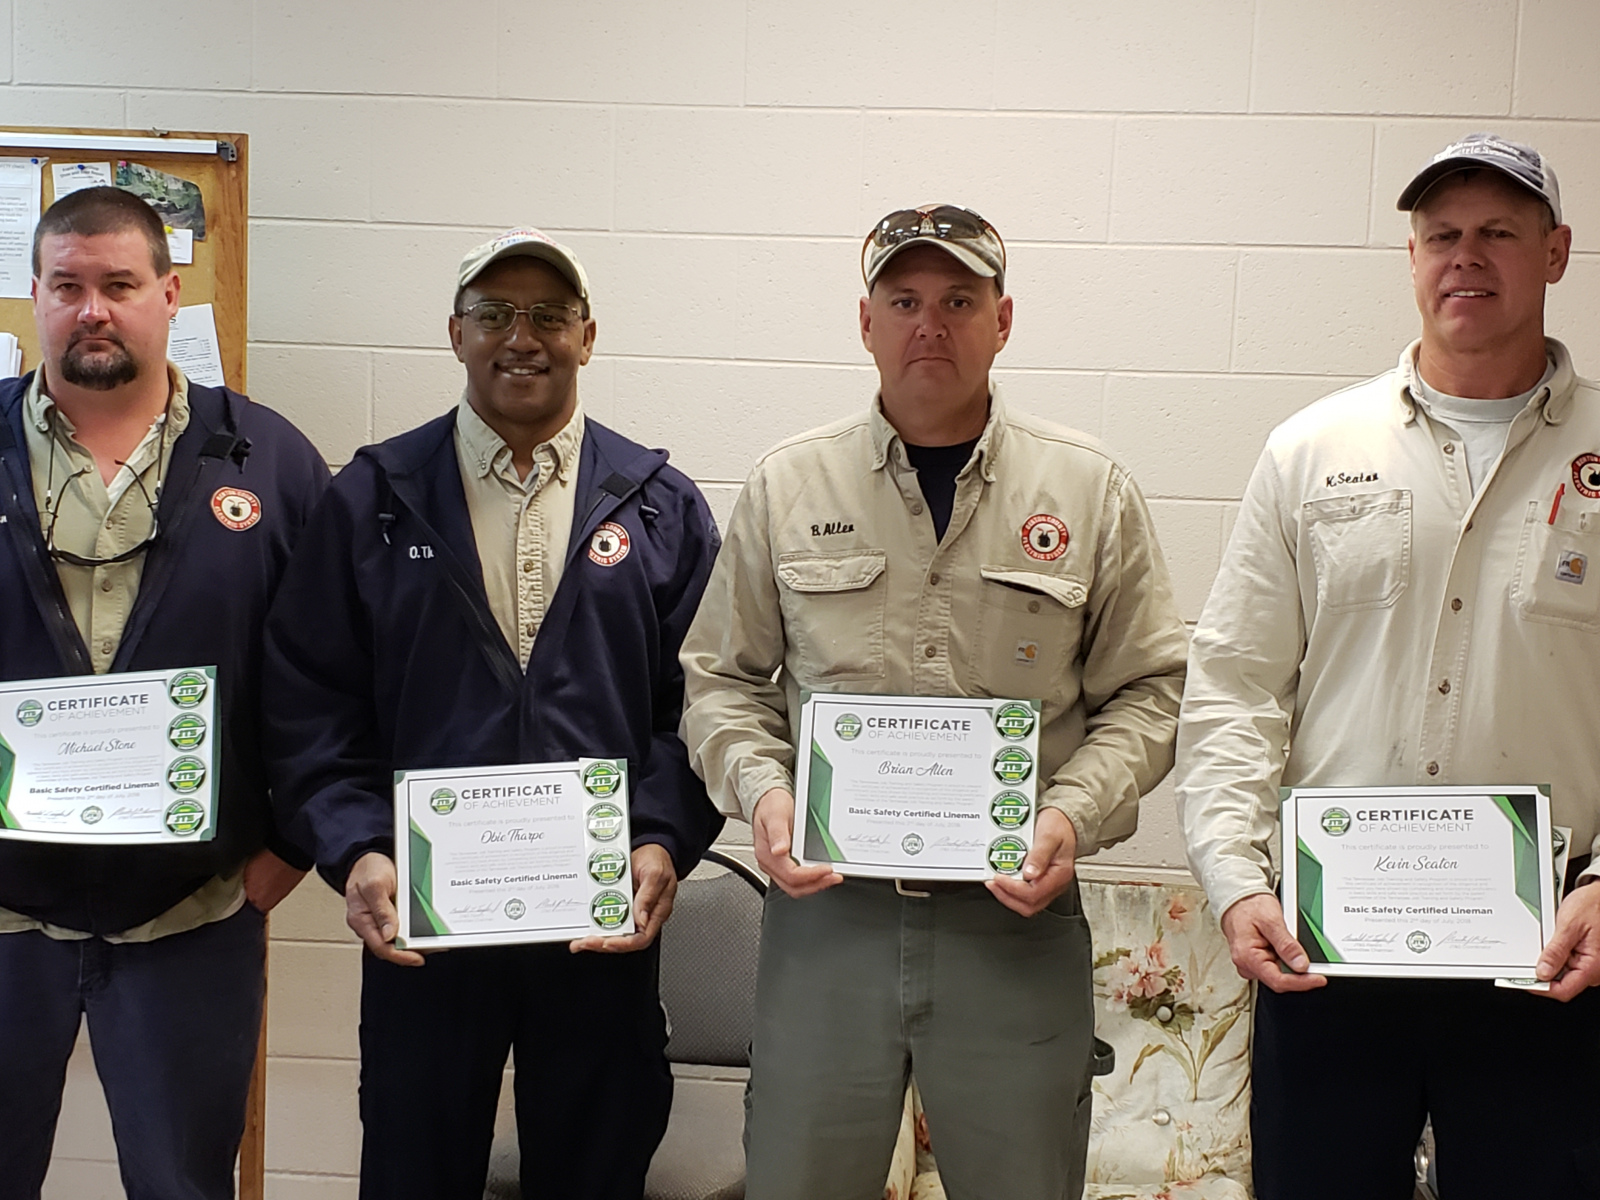 2018 Basic SCL Recipients Michael Stone, Obie Tharpe, Brian Allen, and Kevin Seaton of Benton County Electric